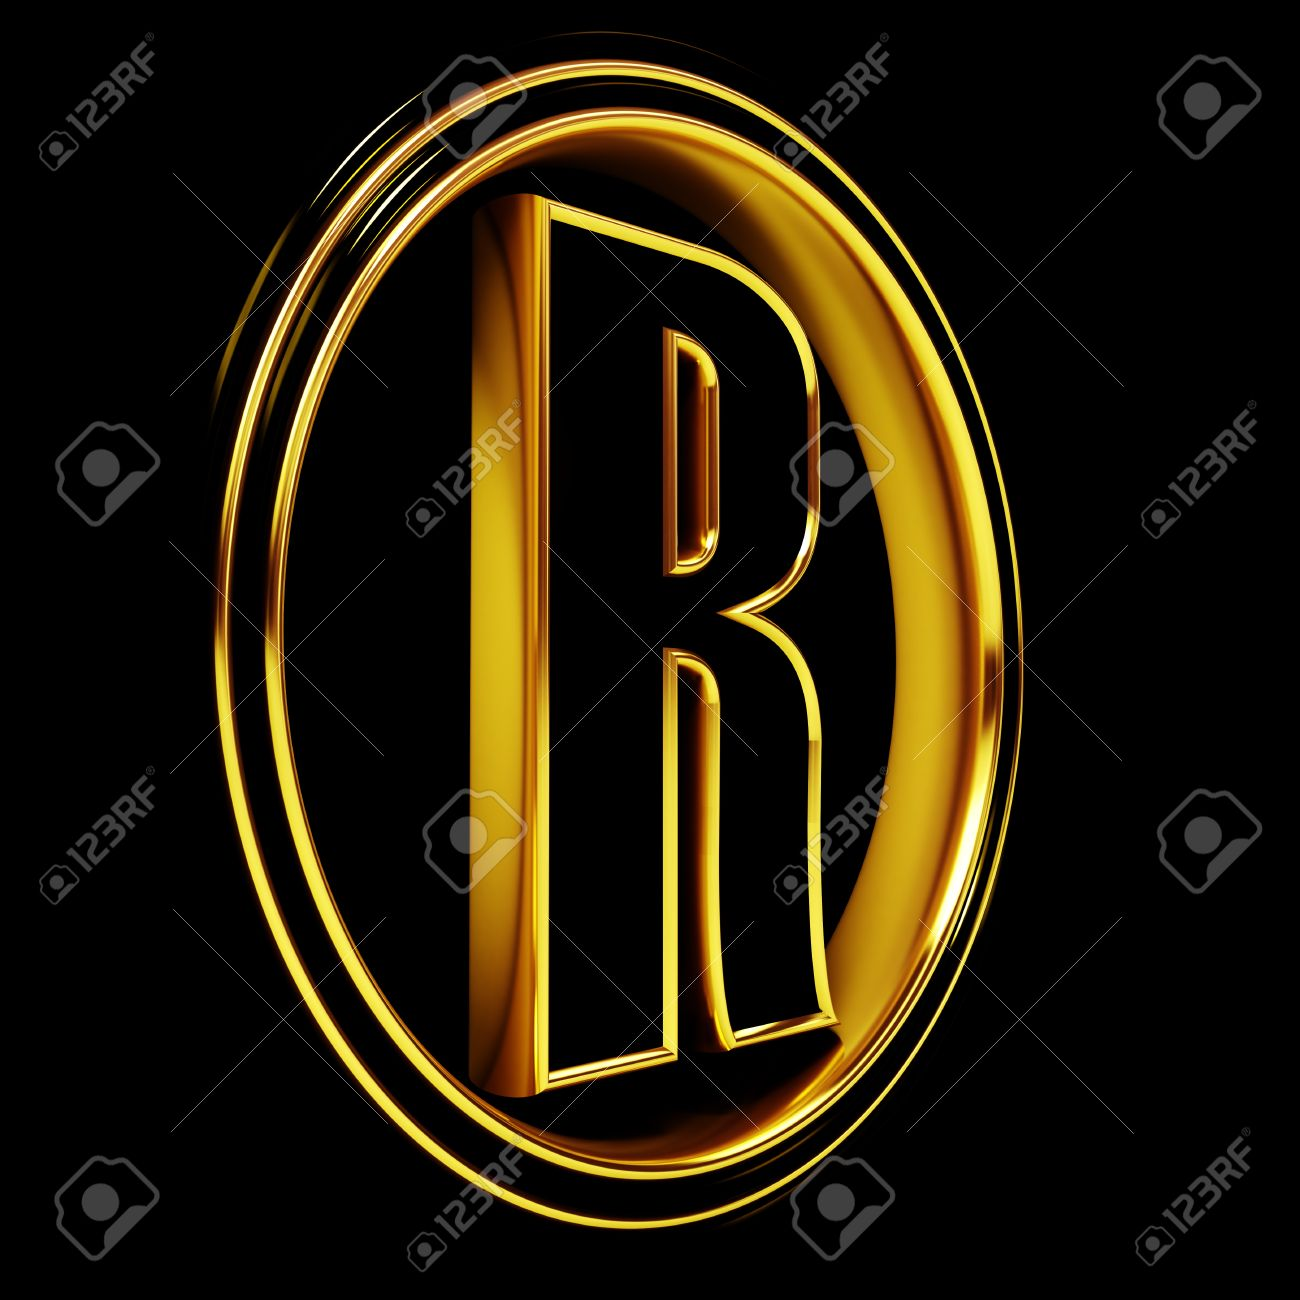 3d letter r in circle black gold metal stock photo picture and 3d letter r in circle black gold metal stock photo 8892290 altavistaventures Image collections